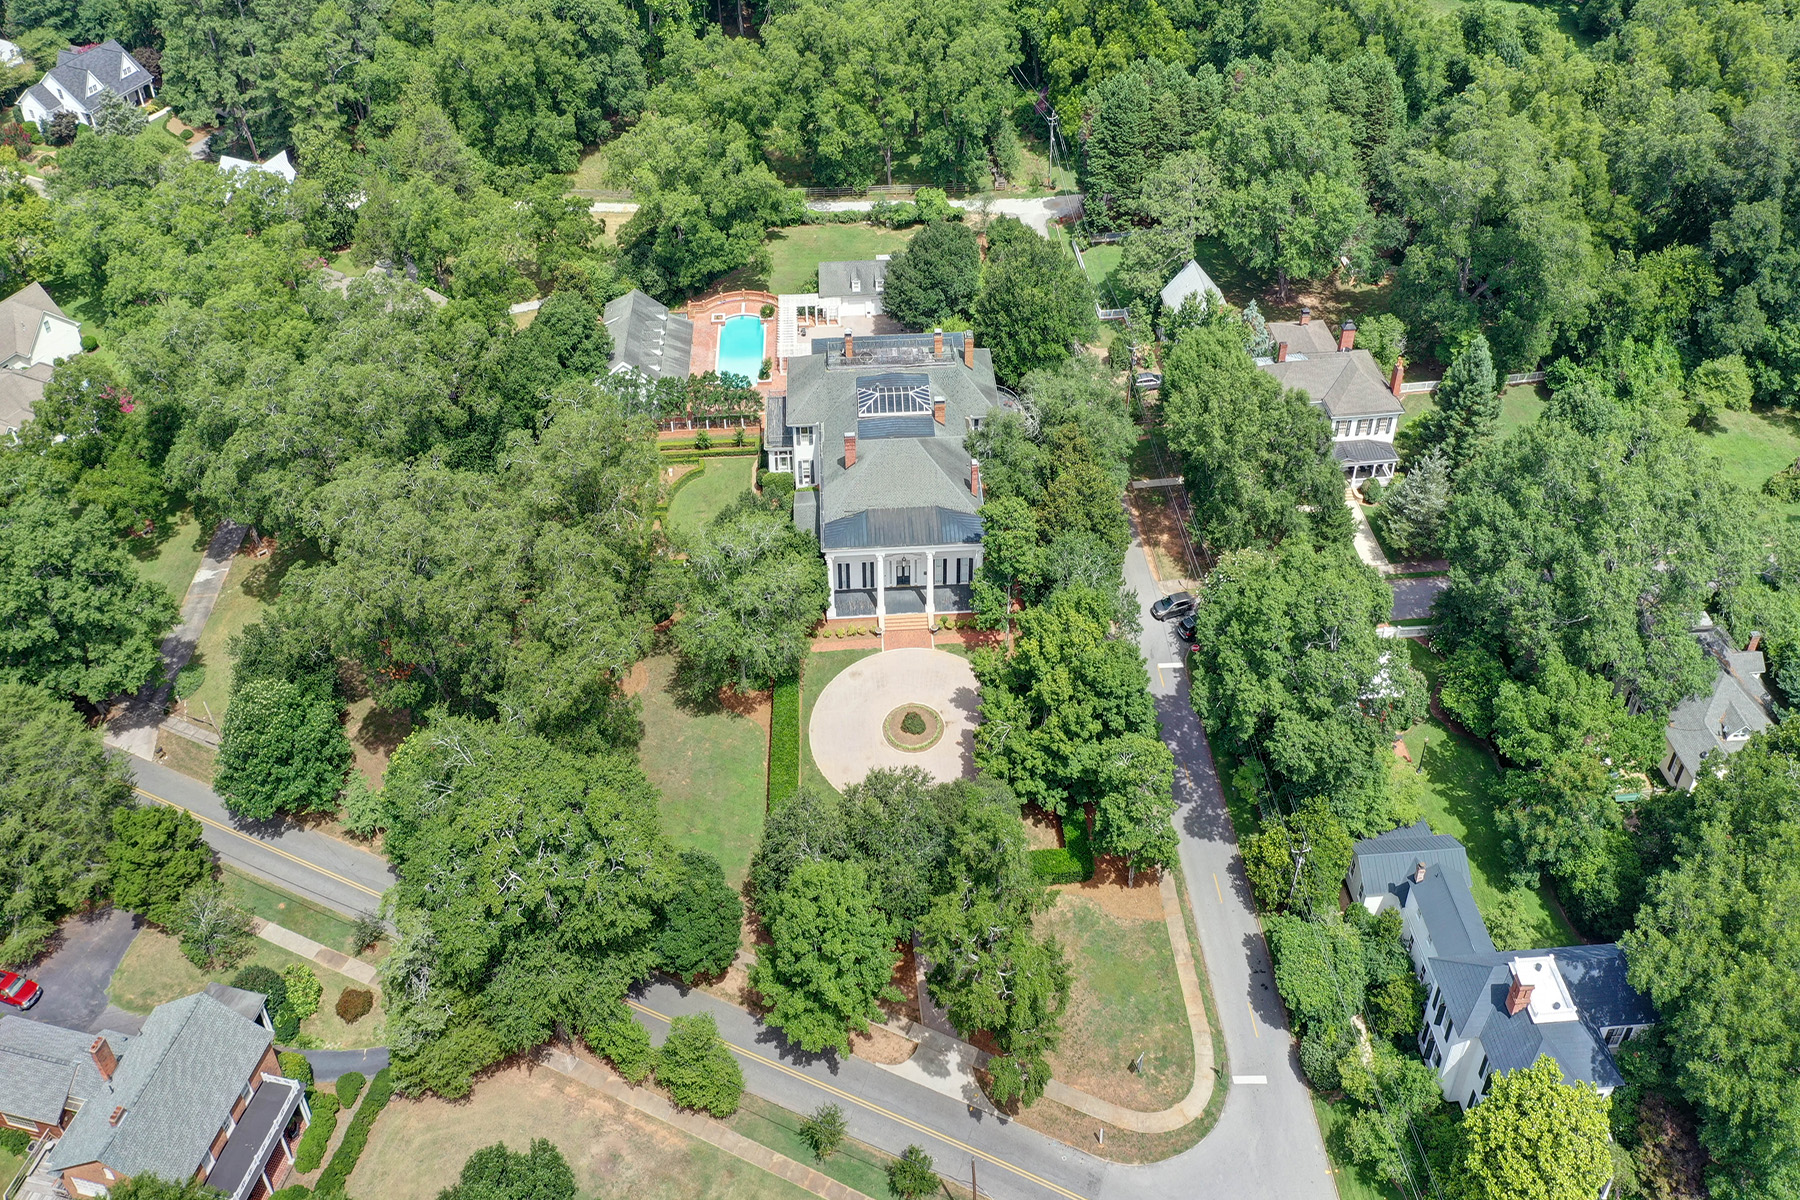 Single Family Homes for Active at Circa 1835 Colonial Revival Masterpiece on 4 +/- Acres 617 Dixie Avenue Madison, Georgia 30650 United States